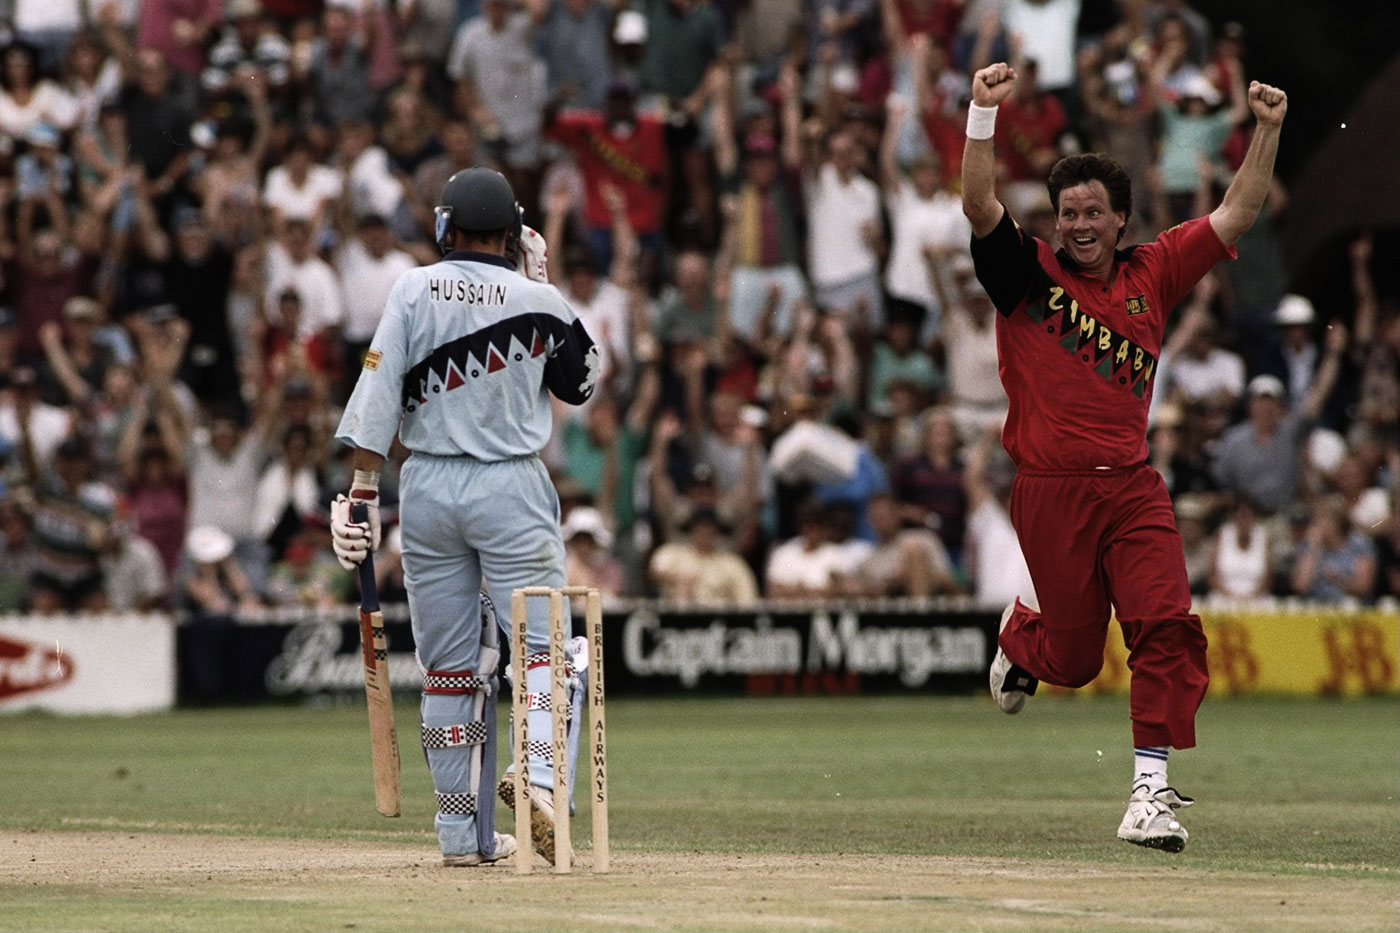 Brandes celebrates his hat-trick wicket - Nasser Hussain - in Harare, 1997